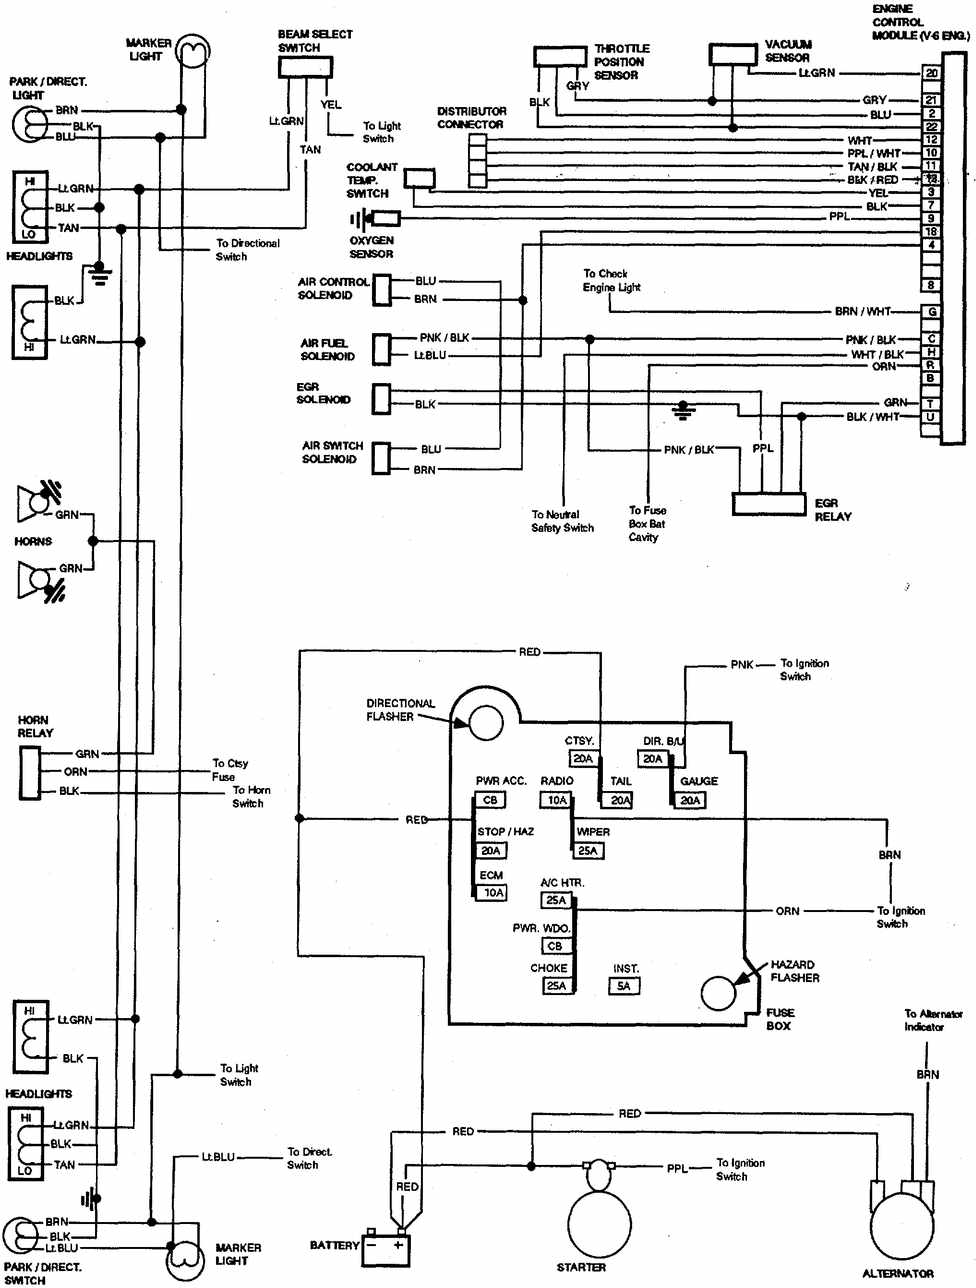 1965 ford 6 and v8 mustang electrical wiring diagram all about